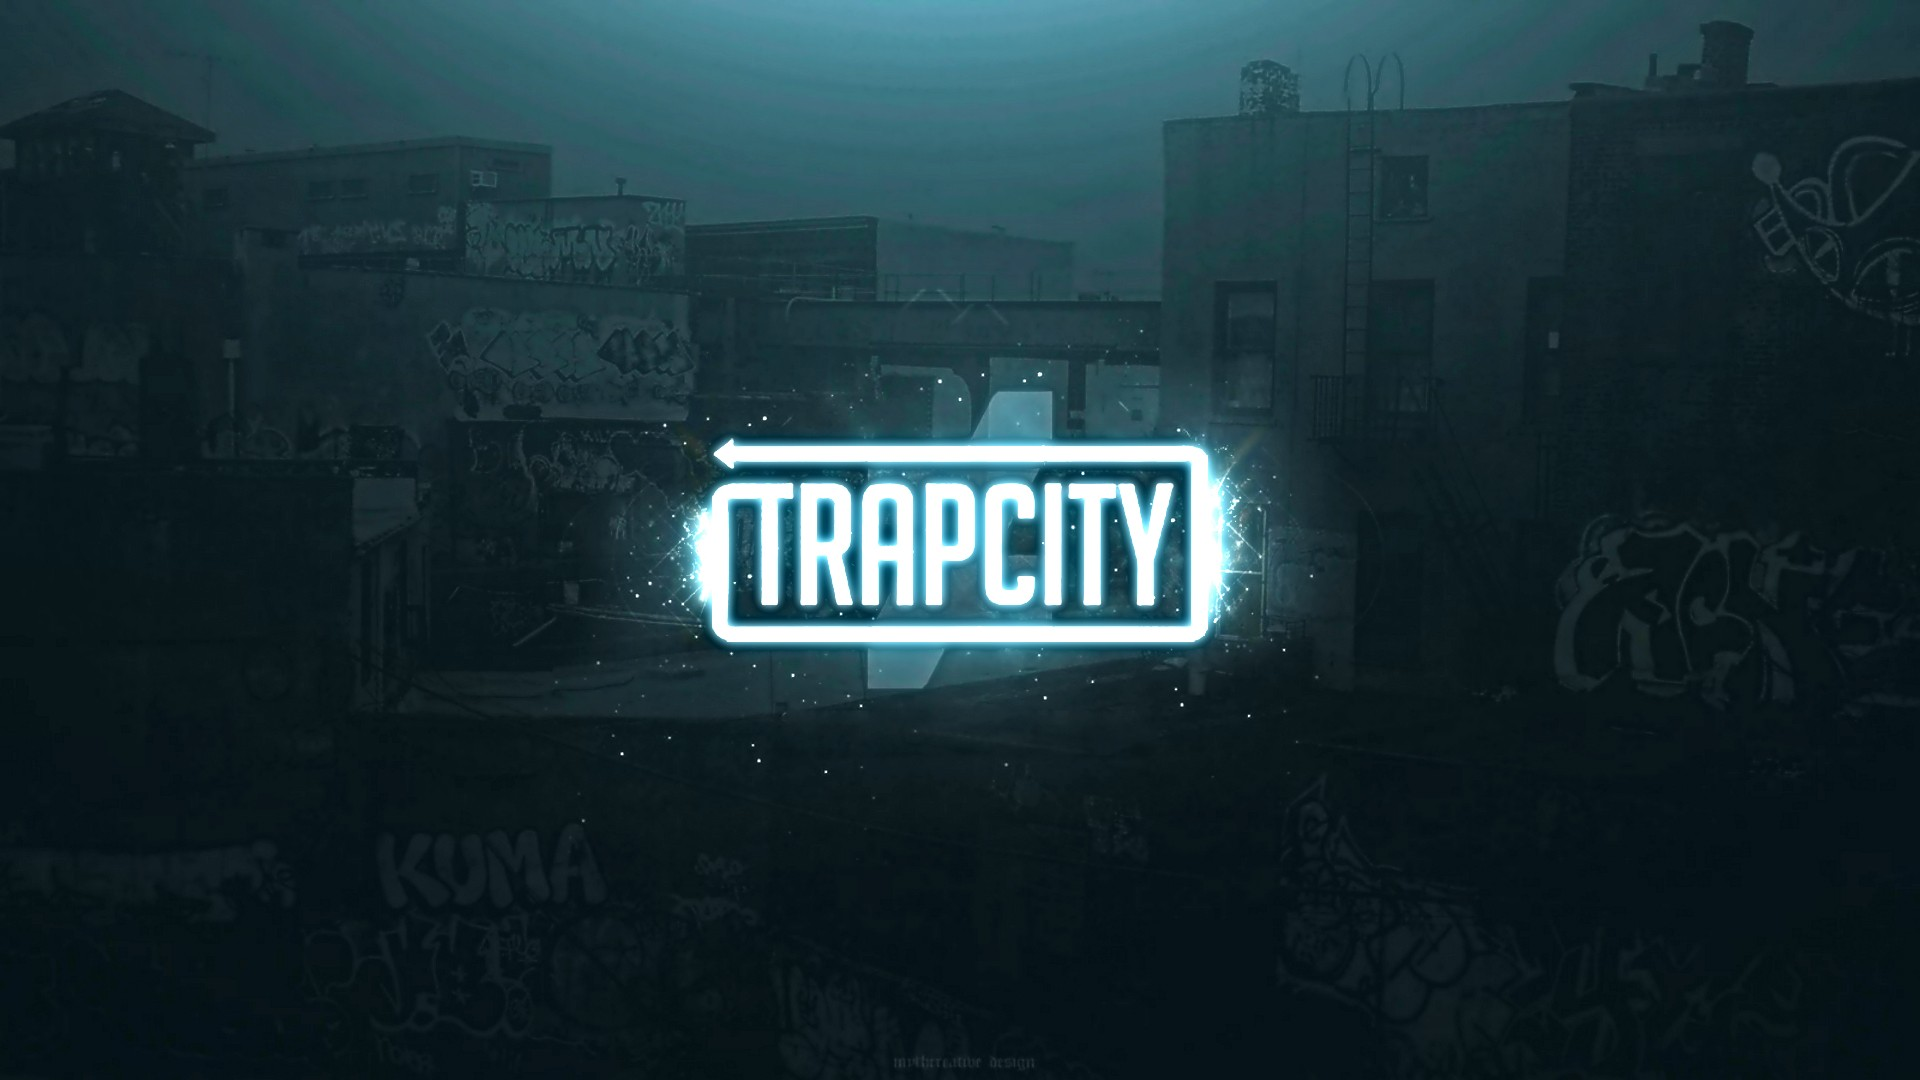 2560x1024 Wallpaper Cars Trapcity Hd Typography 4k Wallpapers Images